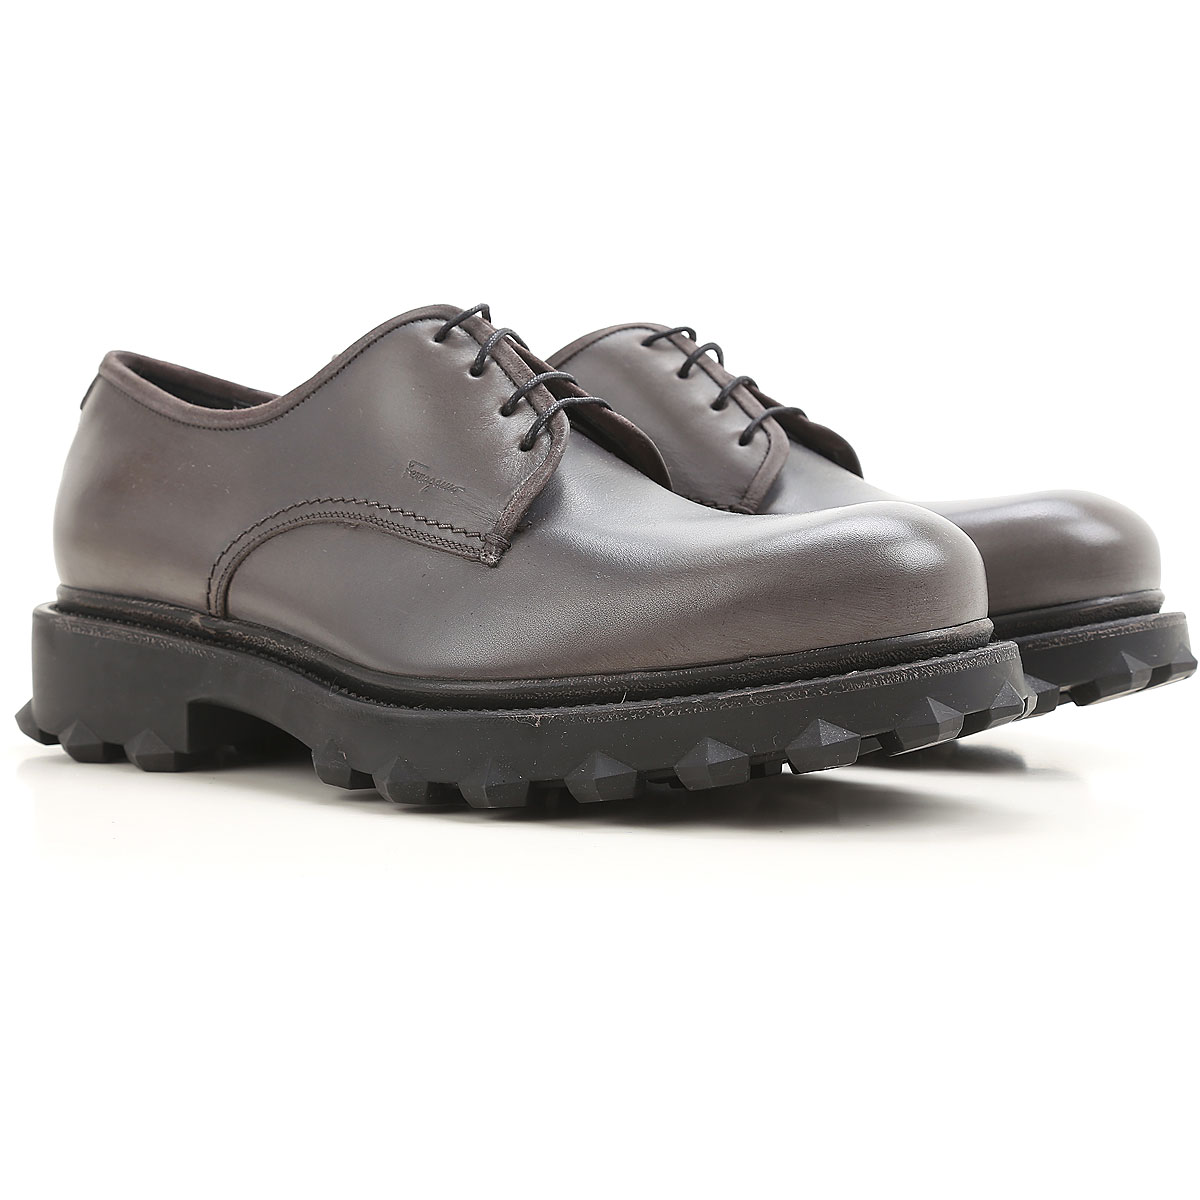 Image of Salvatore Ferragamo Lace Up Shoes for Men Oxfords, Derbies and Brogues, dark stone grey, Leather, 2017, 10 11 7 7.5 8 8.5 9.5